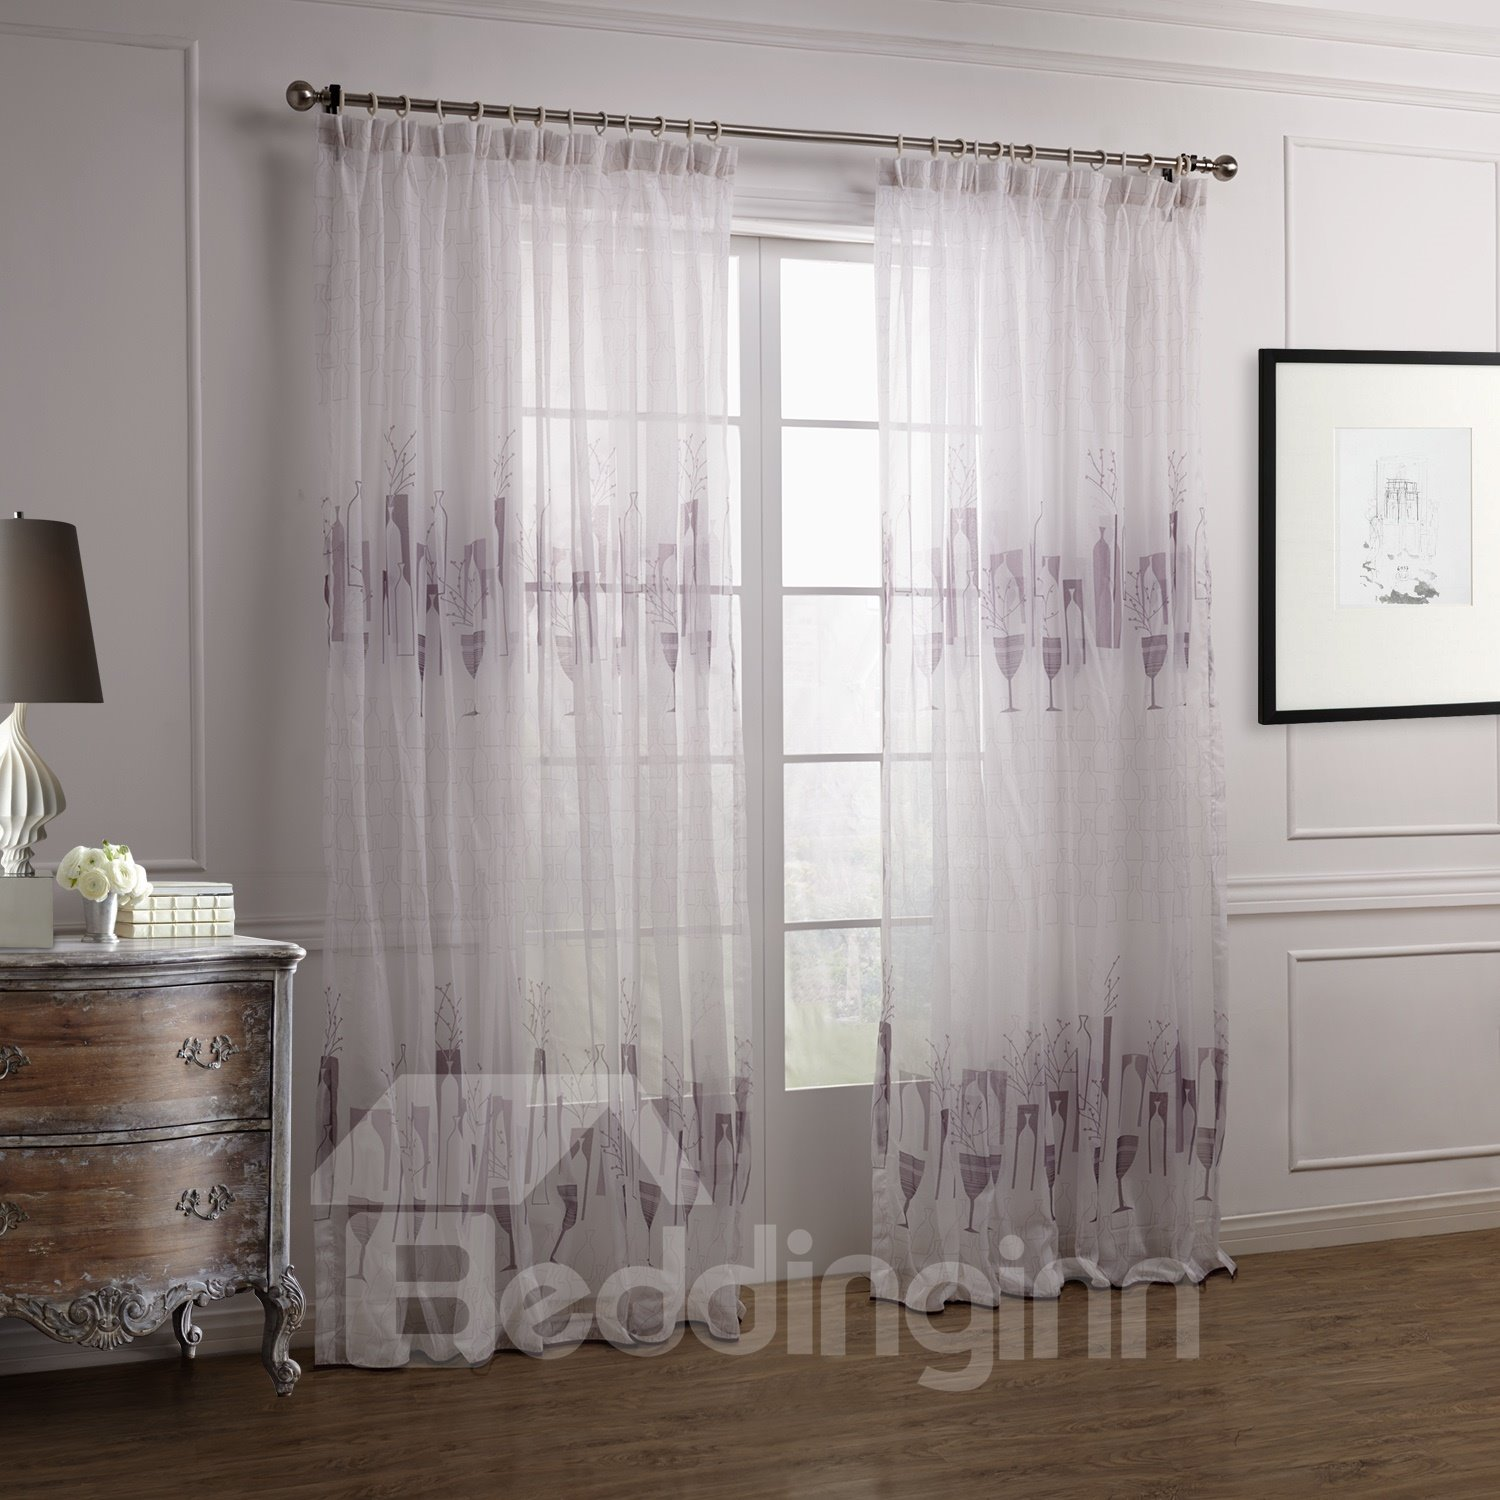 Fantastic Elegant Purple Vase Floral Printing Custom Sheer Curtain